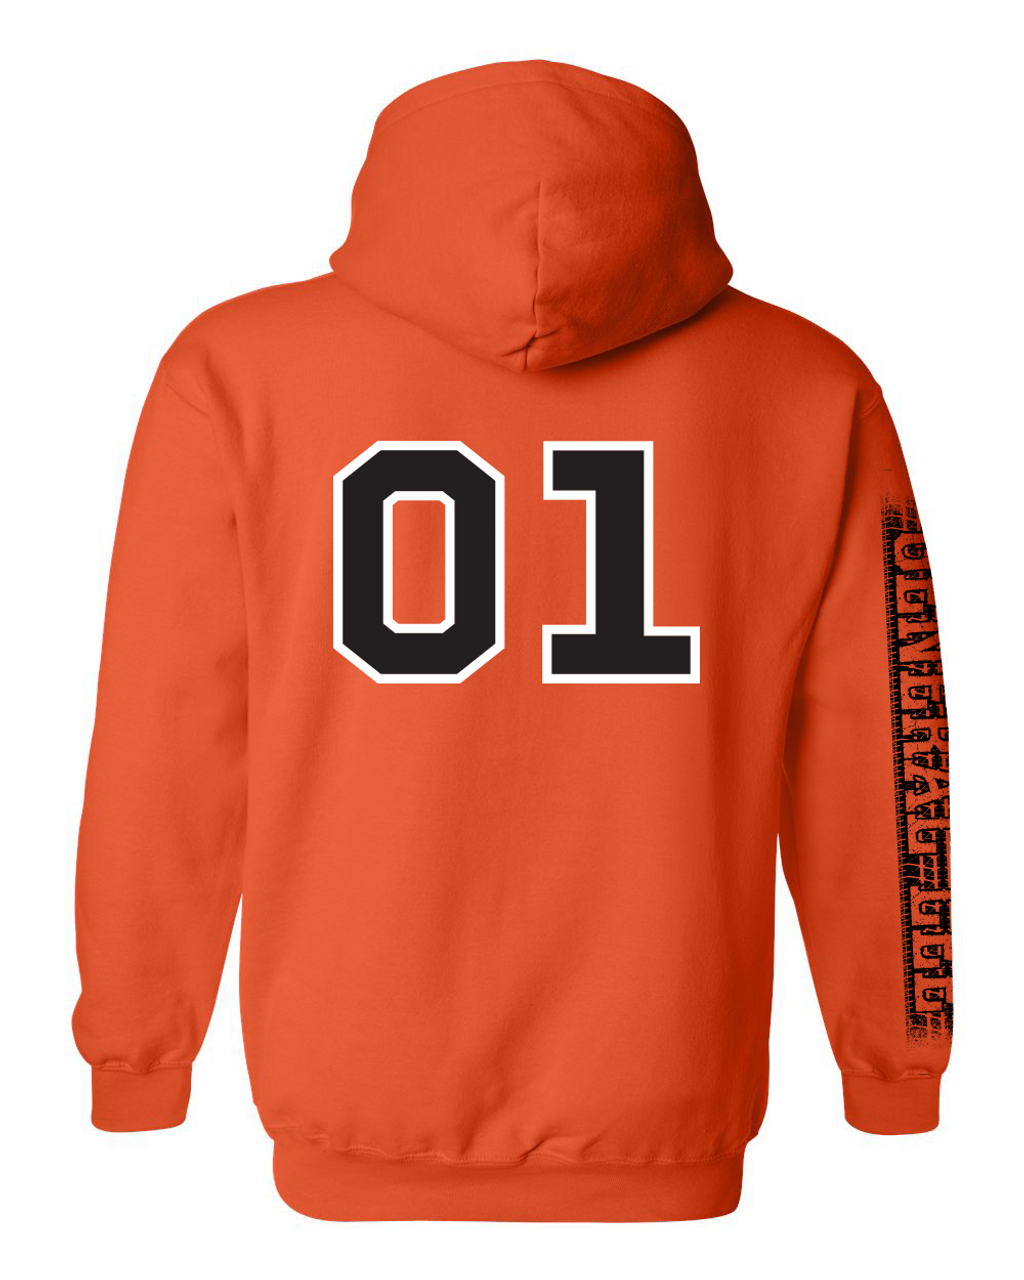 Cooter's Original 01 Pullover Hoodie